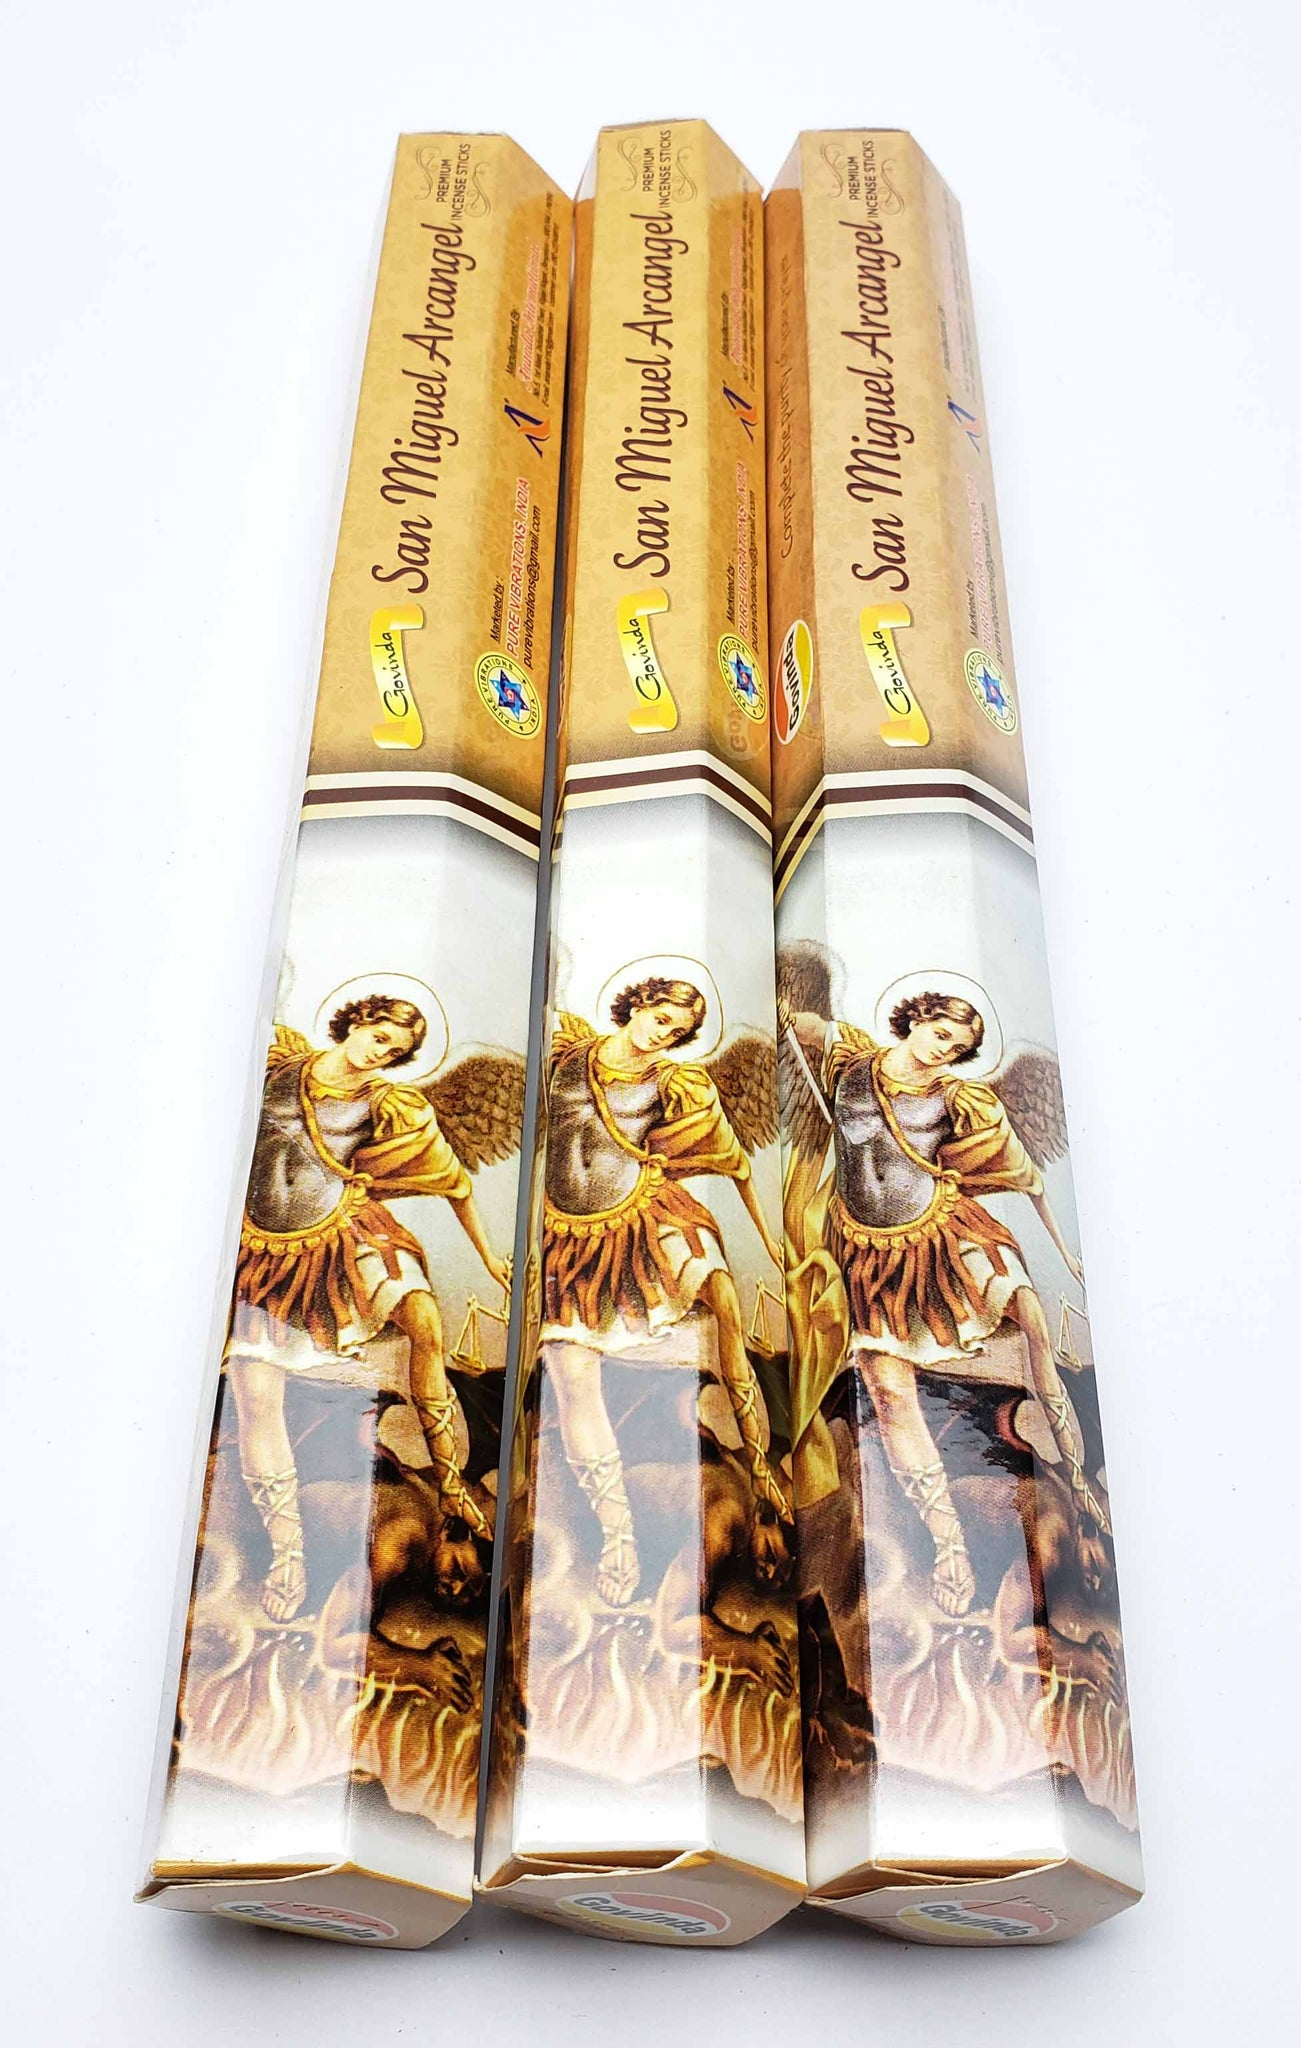 Saint Michael Archangel Incense Sticks